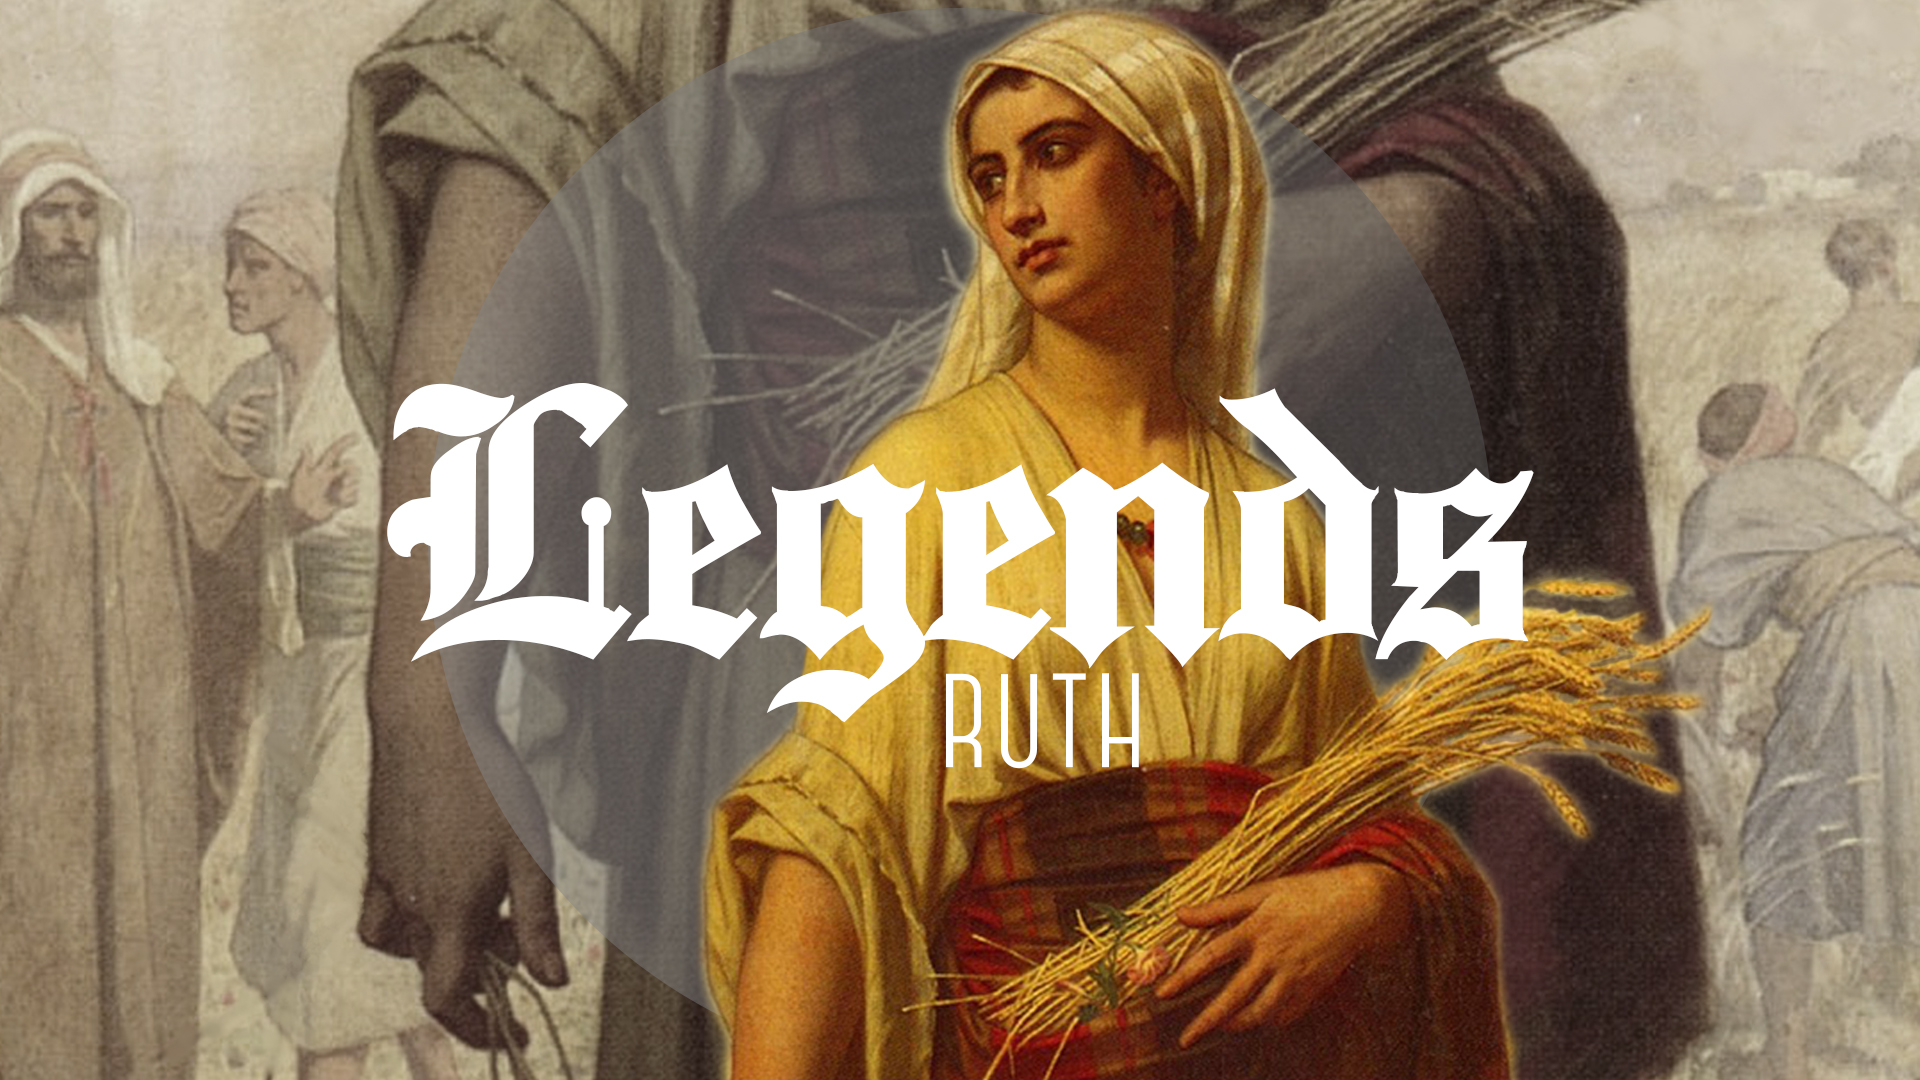 LEGENDS: Ruth - July 30 - August 13, 2017